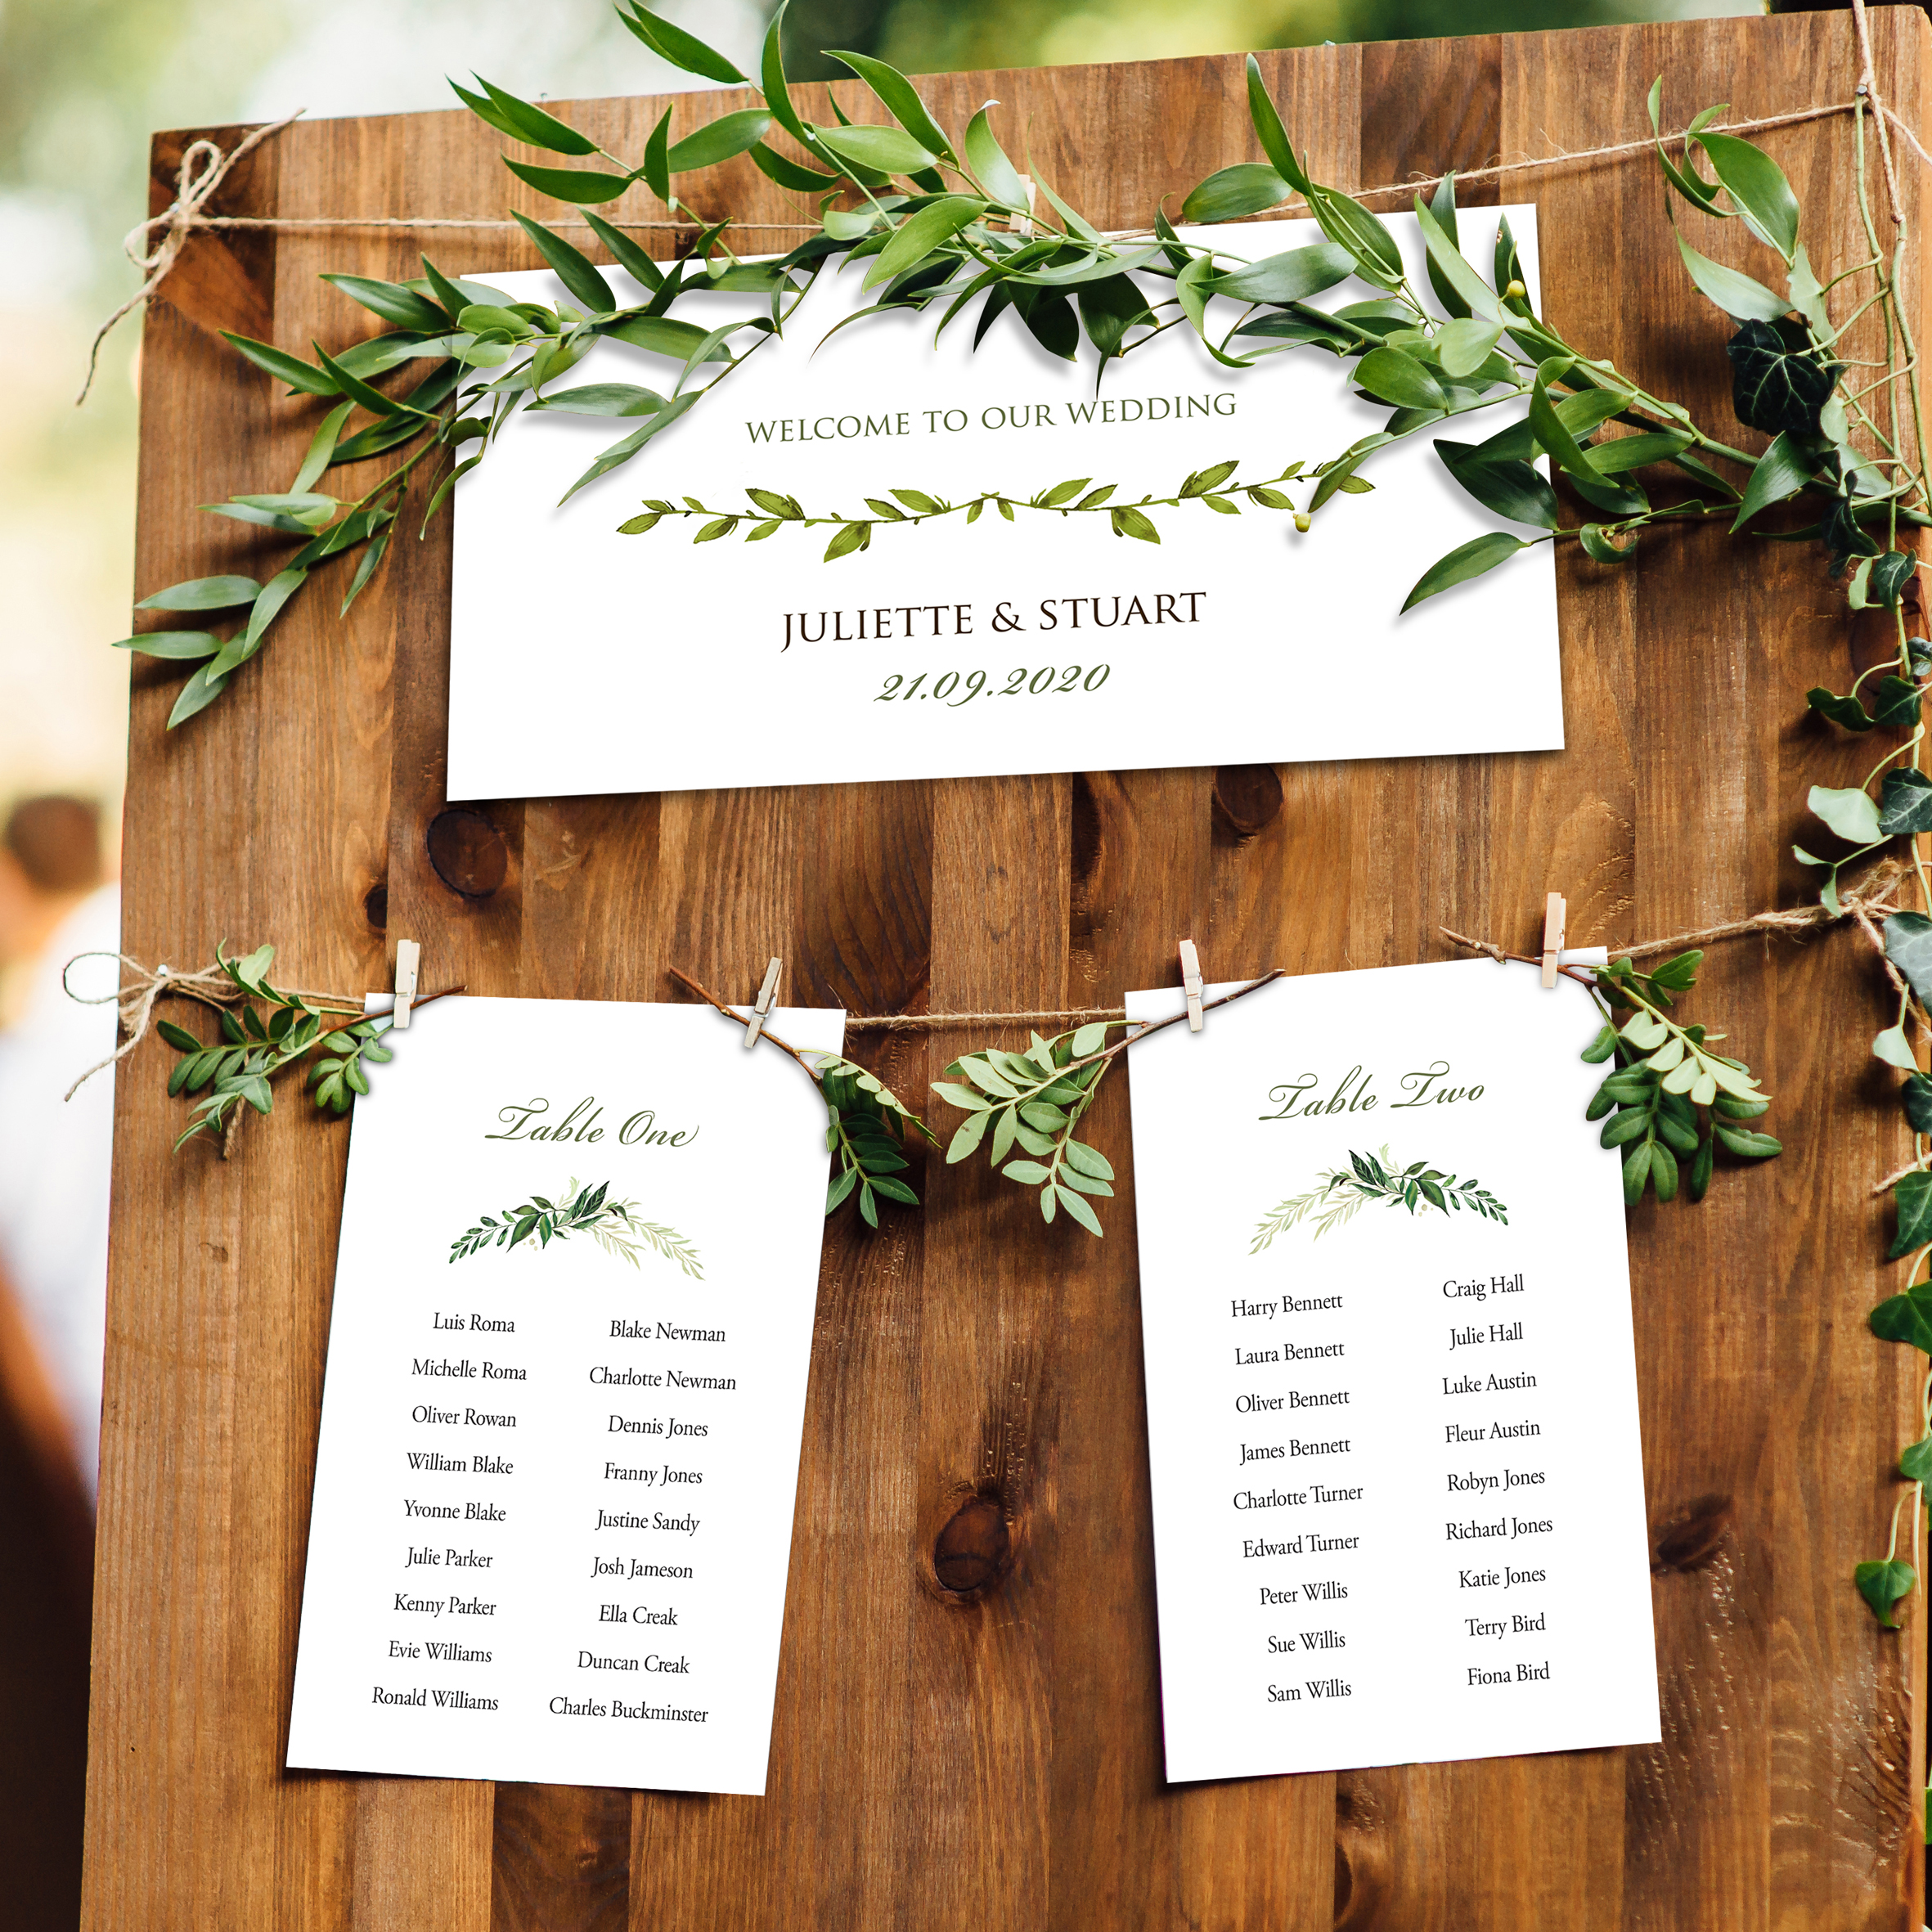 Greenery on the day wedding stationery